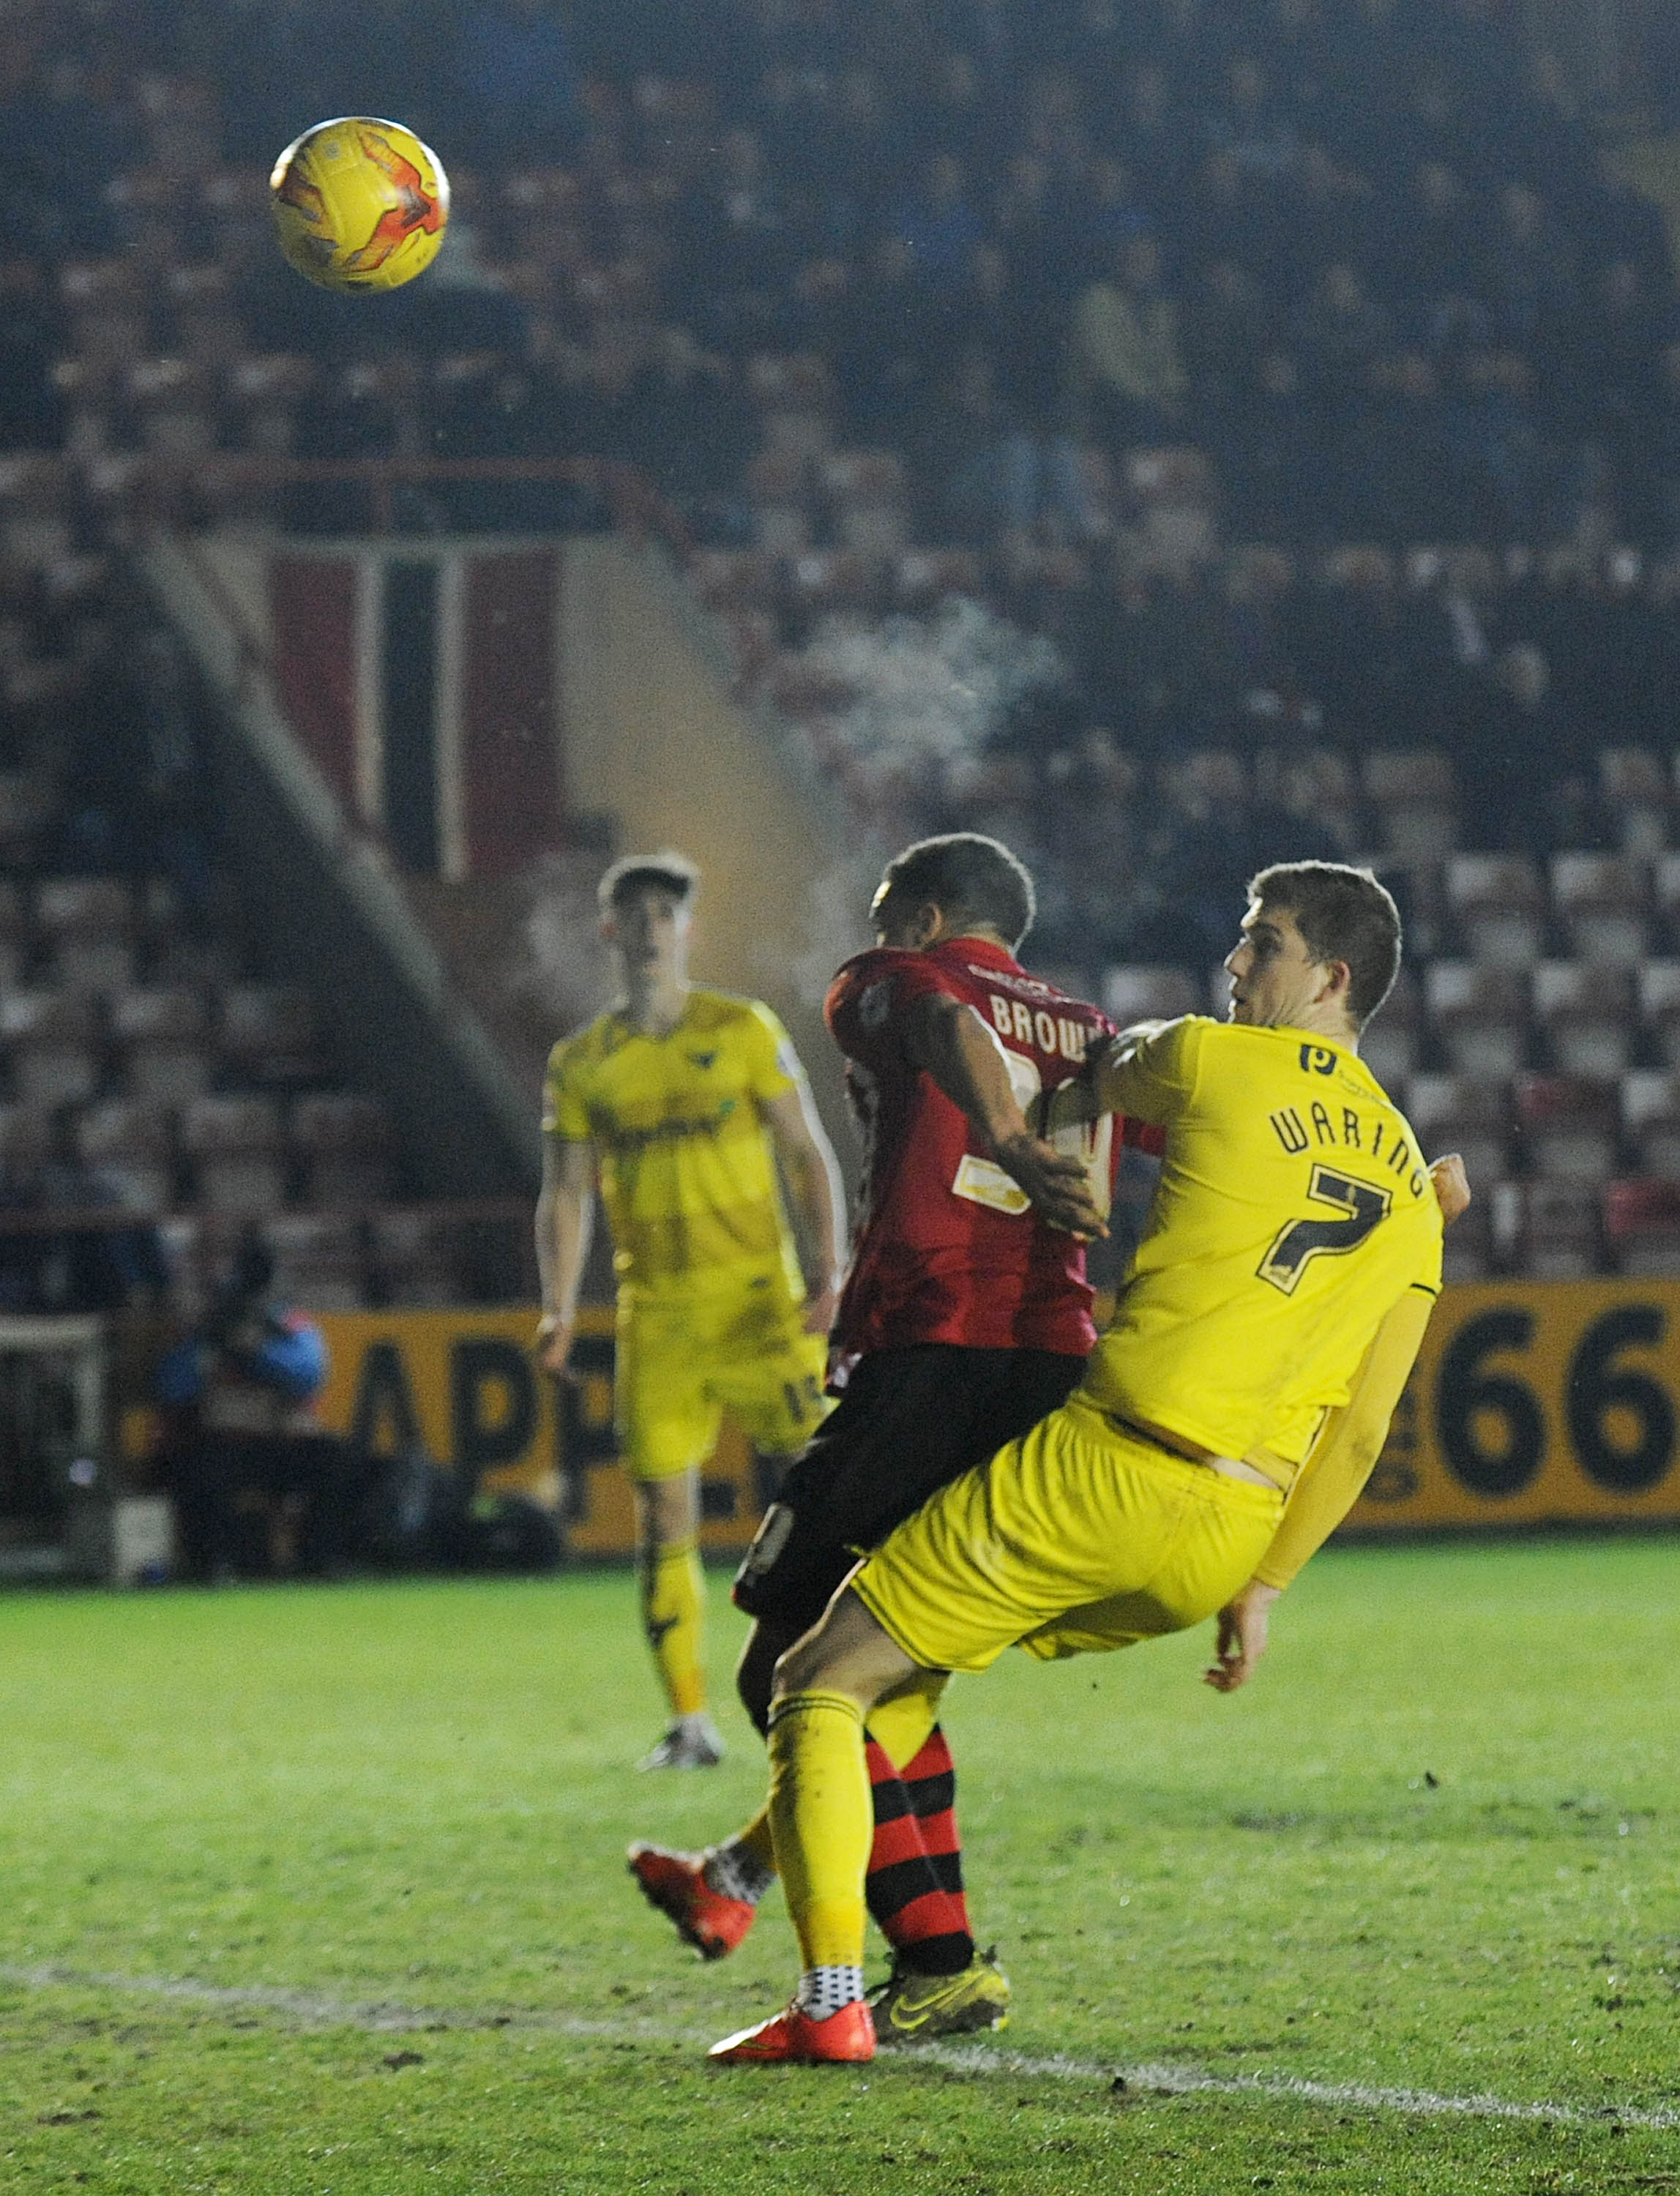 George Waring heads against the bar after coming off the bench during Oxford United's win against Exeter on Tuesday